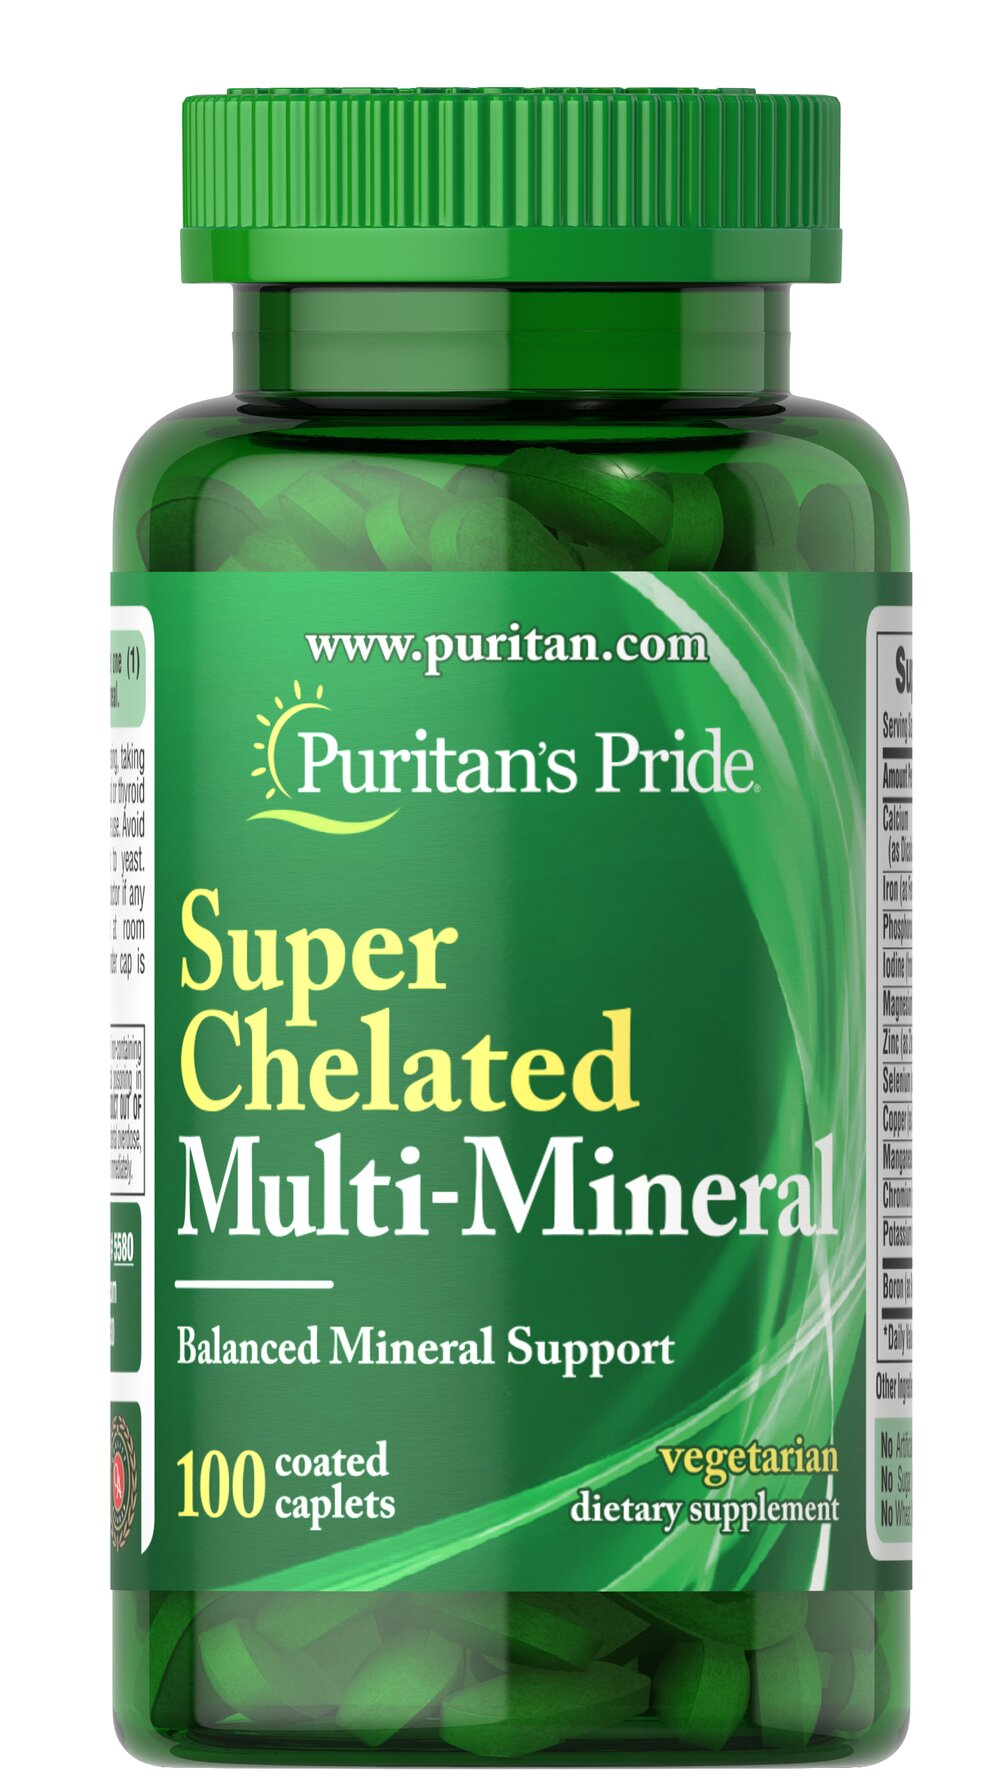 Super Chelated Multi Mineral <p>In Super Chelated Multi-Mineral, we combine over 10 major and trace minerals into a comprehensive mineral blend. Super Chelated Multi-Mineral contains a nutritional treasure chest including Calcium and Magnesium, which play essential roles in maintaining proper bone mineralization, Zinc, which helps support immune function and Boron, which plays a role in bone metabolism.**</p> 100 Coated Caplets  $13.99